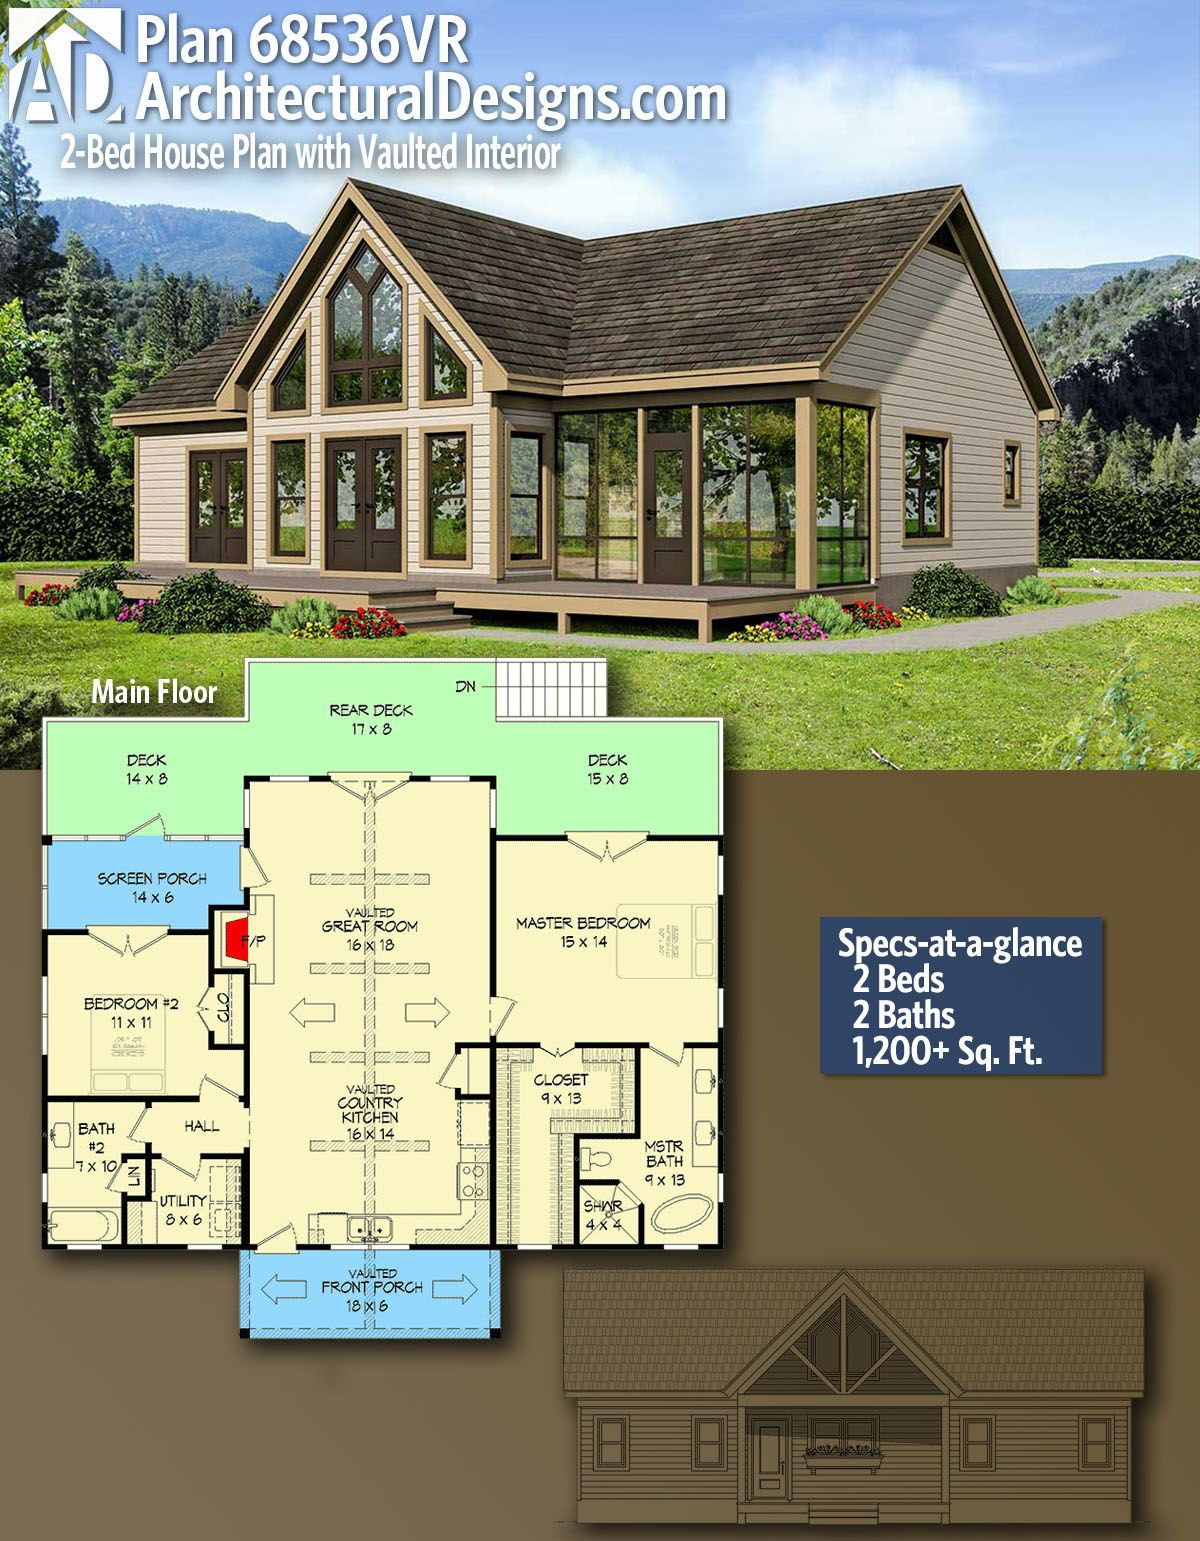 Plan 68536vr 2 Bed House Plan With Vaulted Interior Architectural Design House Plans House Plans Farmhouse Cabin House Plans